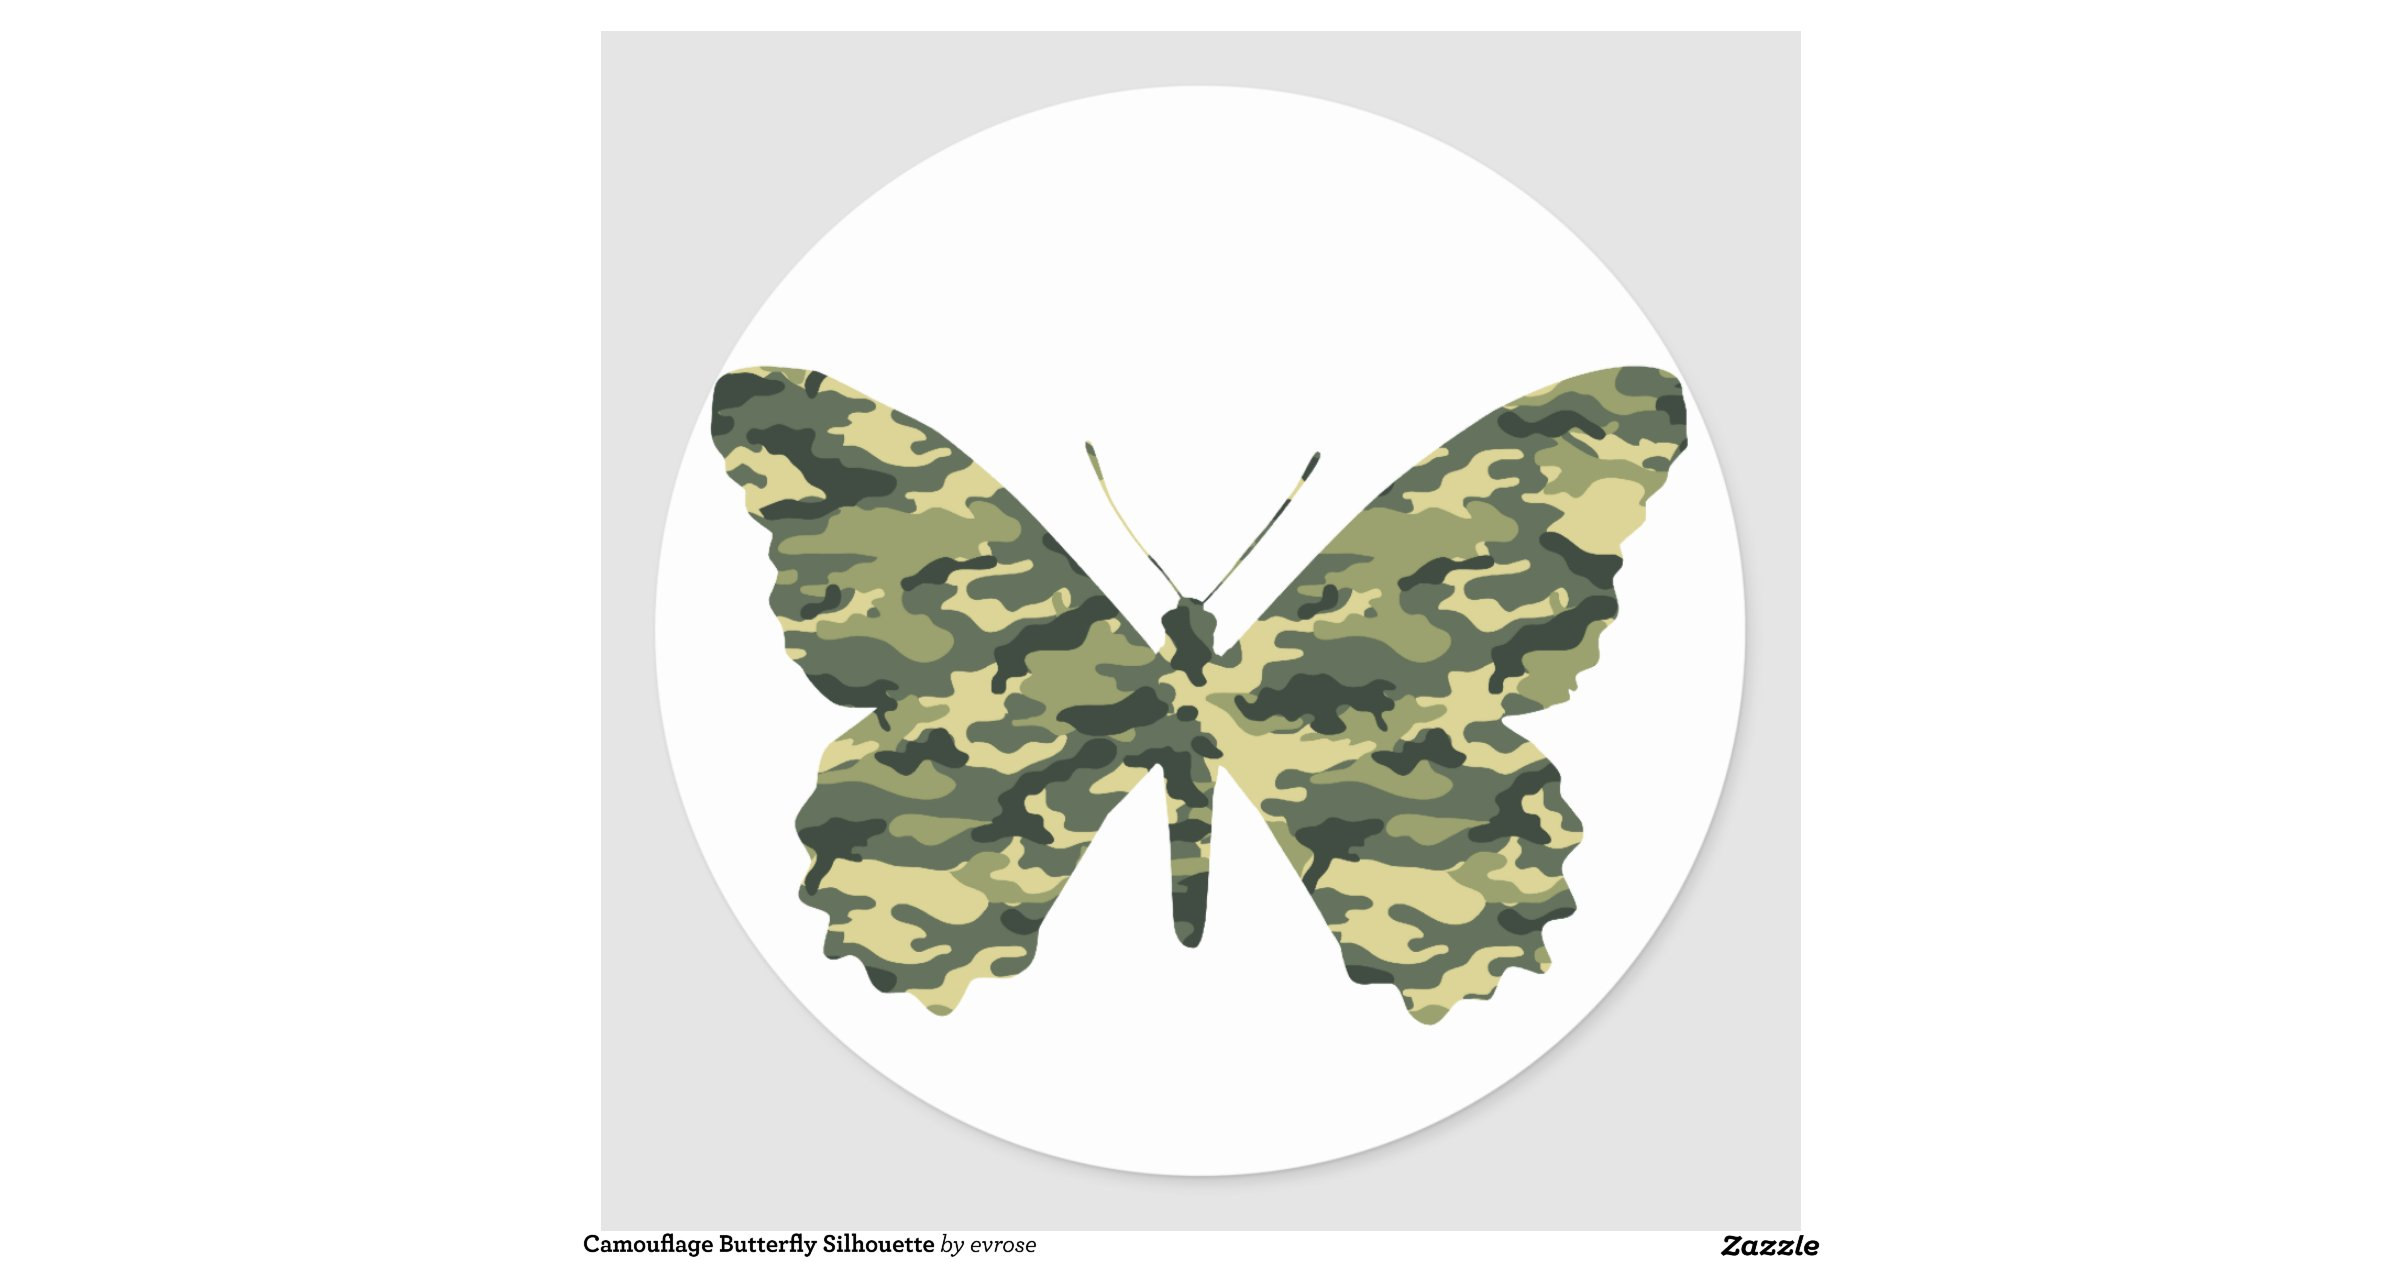 camouflage_butterfly_silhouette_sticker ...